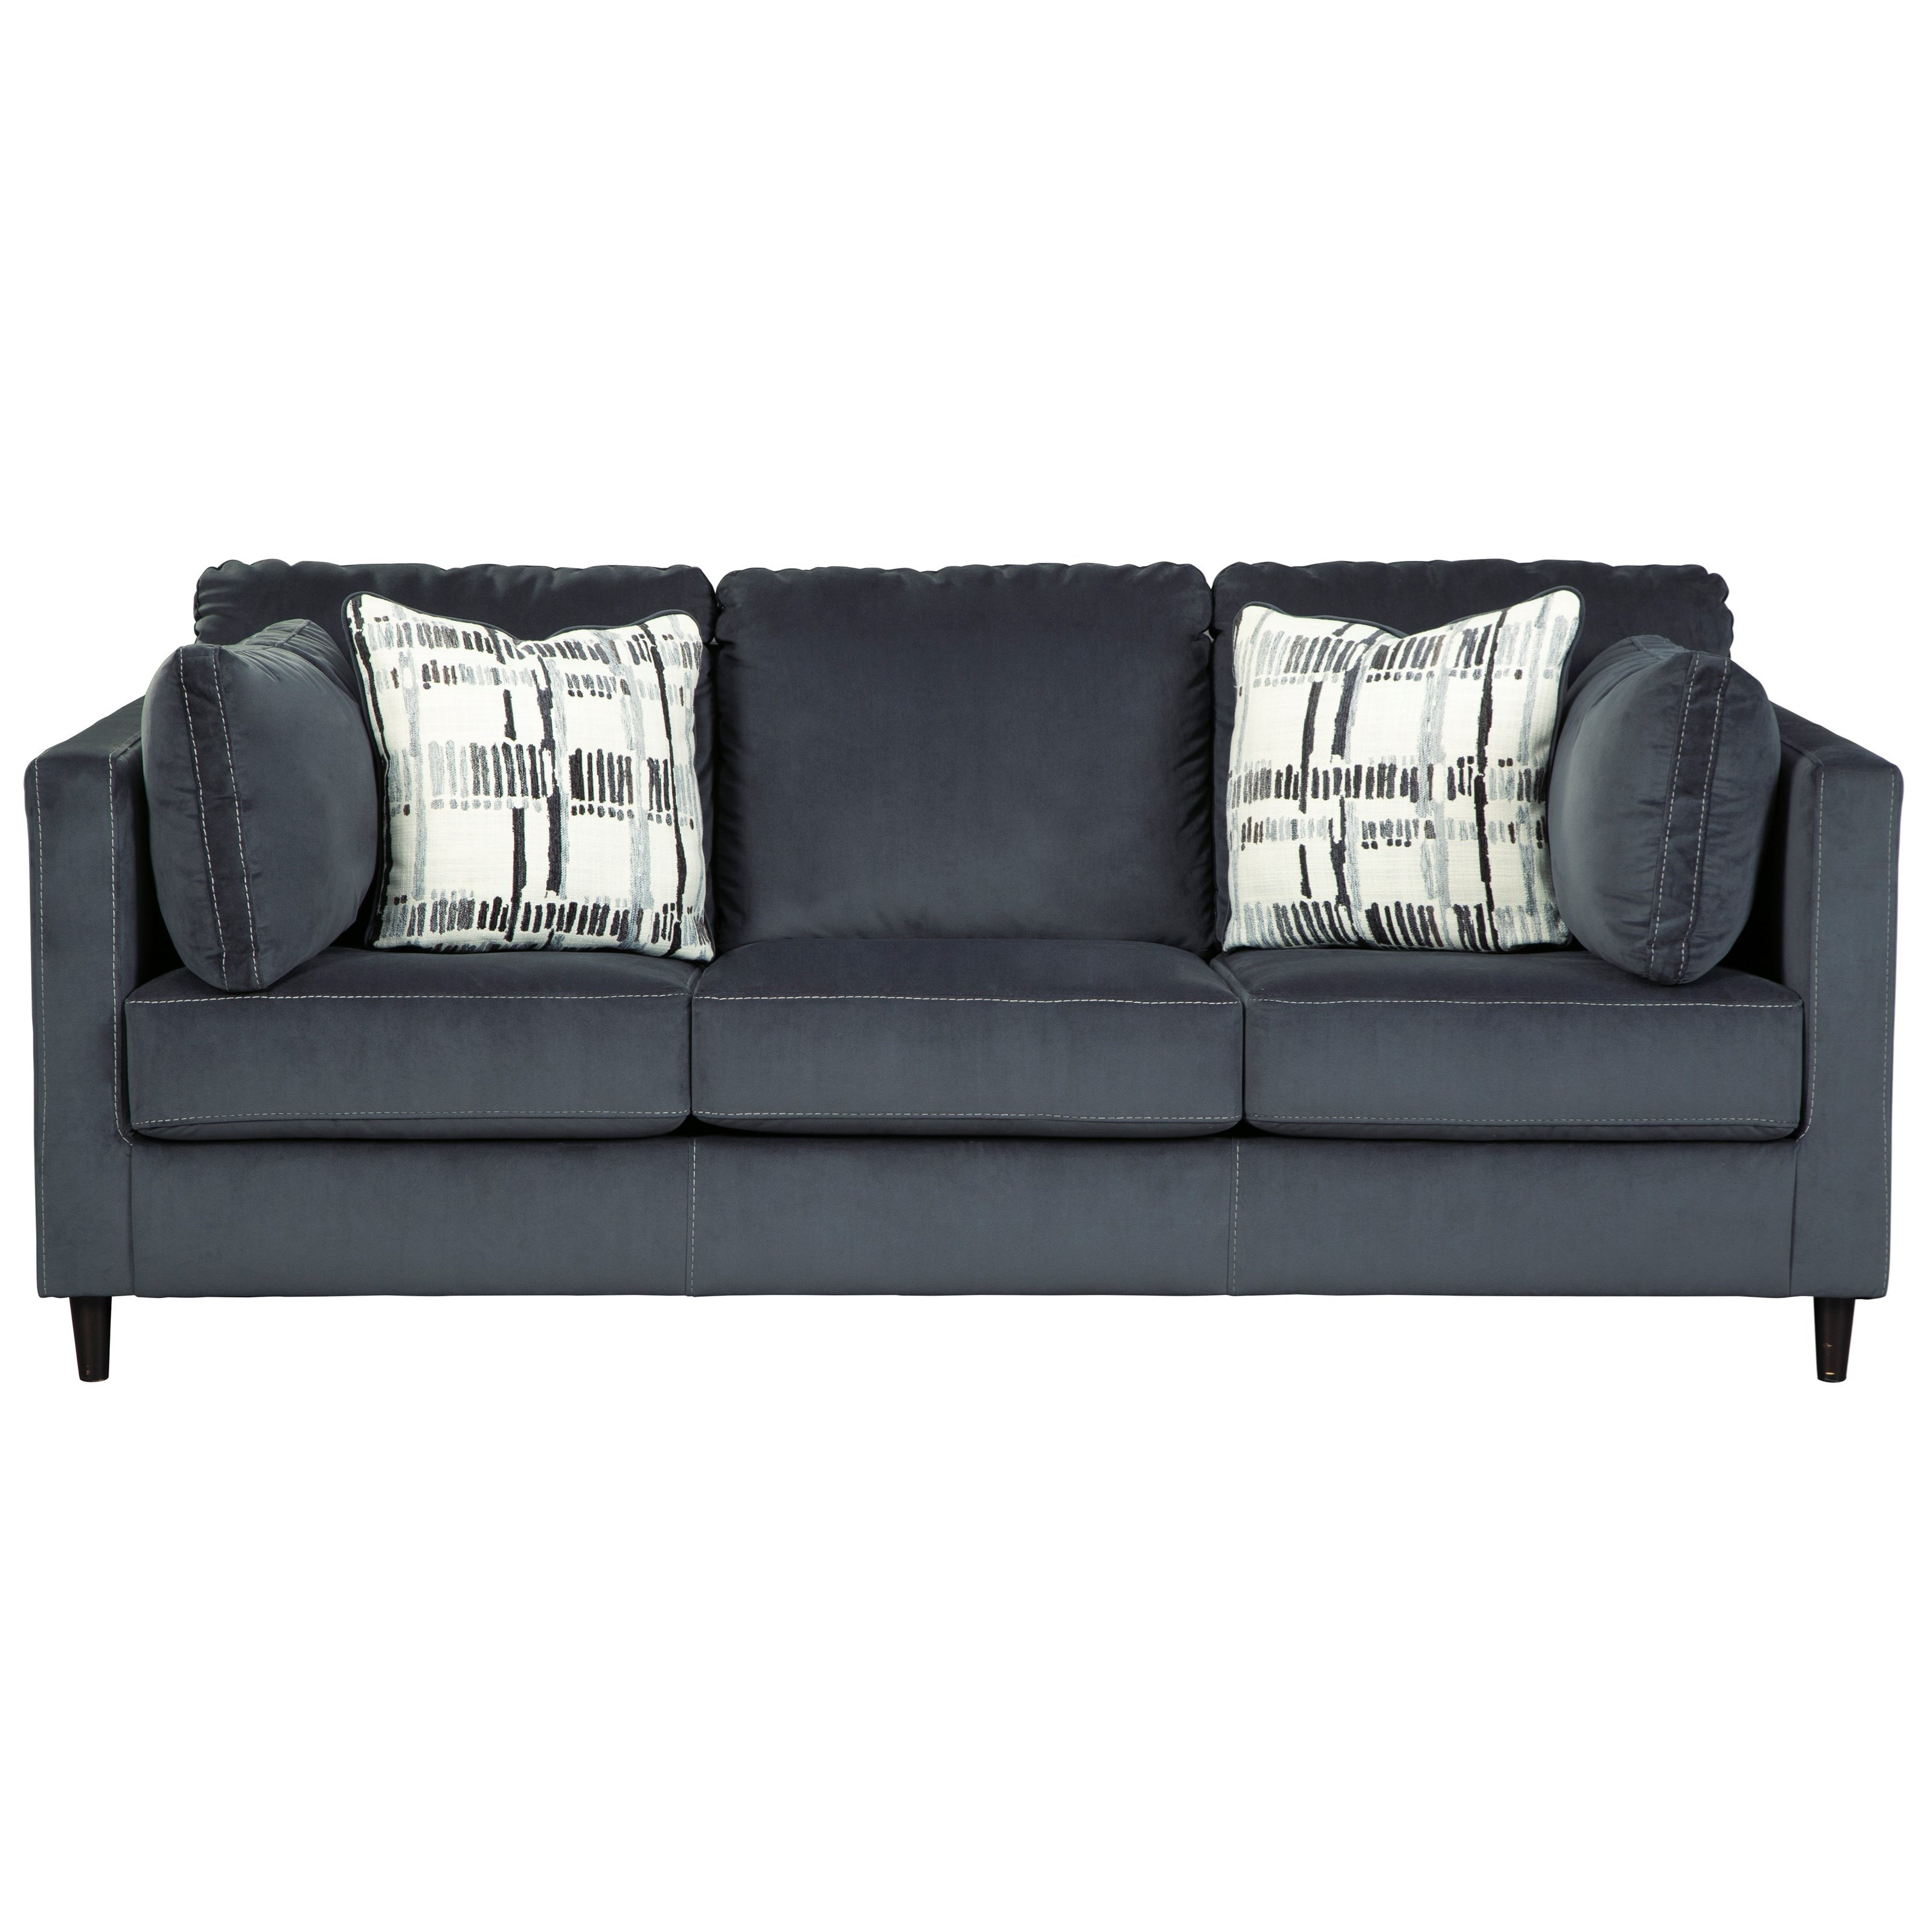 Kennewick Sofa by Signature Design at Fisher Home Furnishings